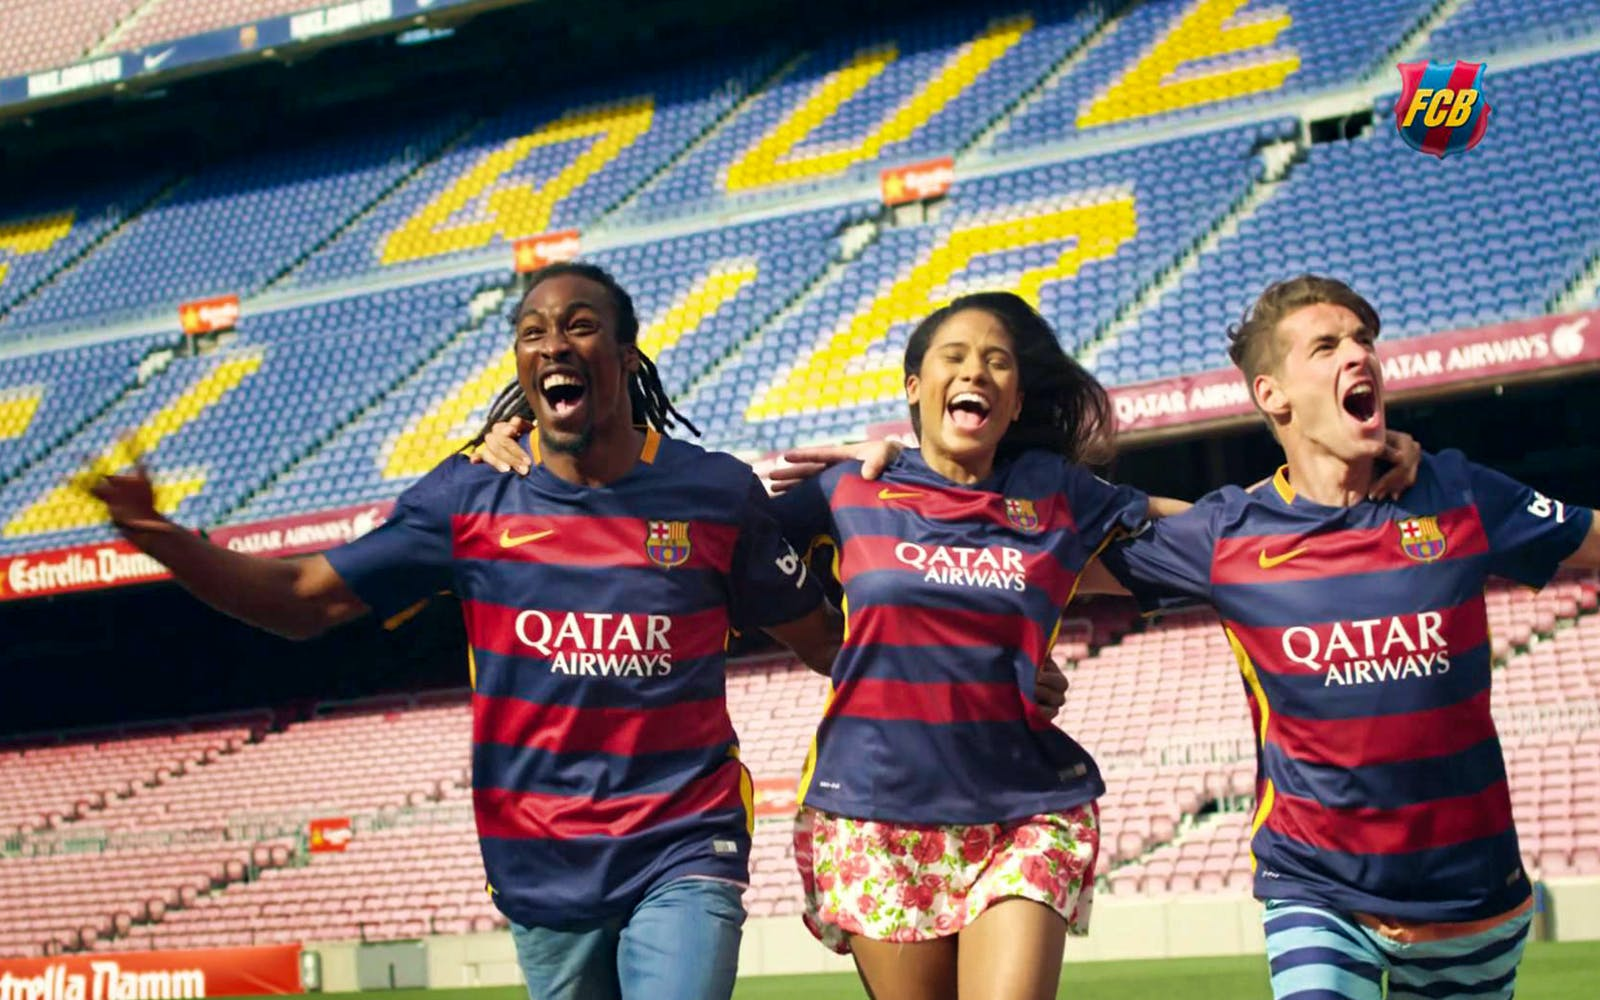 fc barcelona fans camp nou experience guided visit with brunch-4